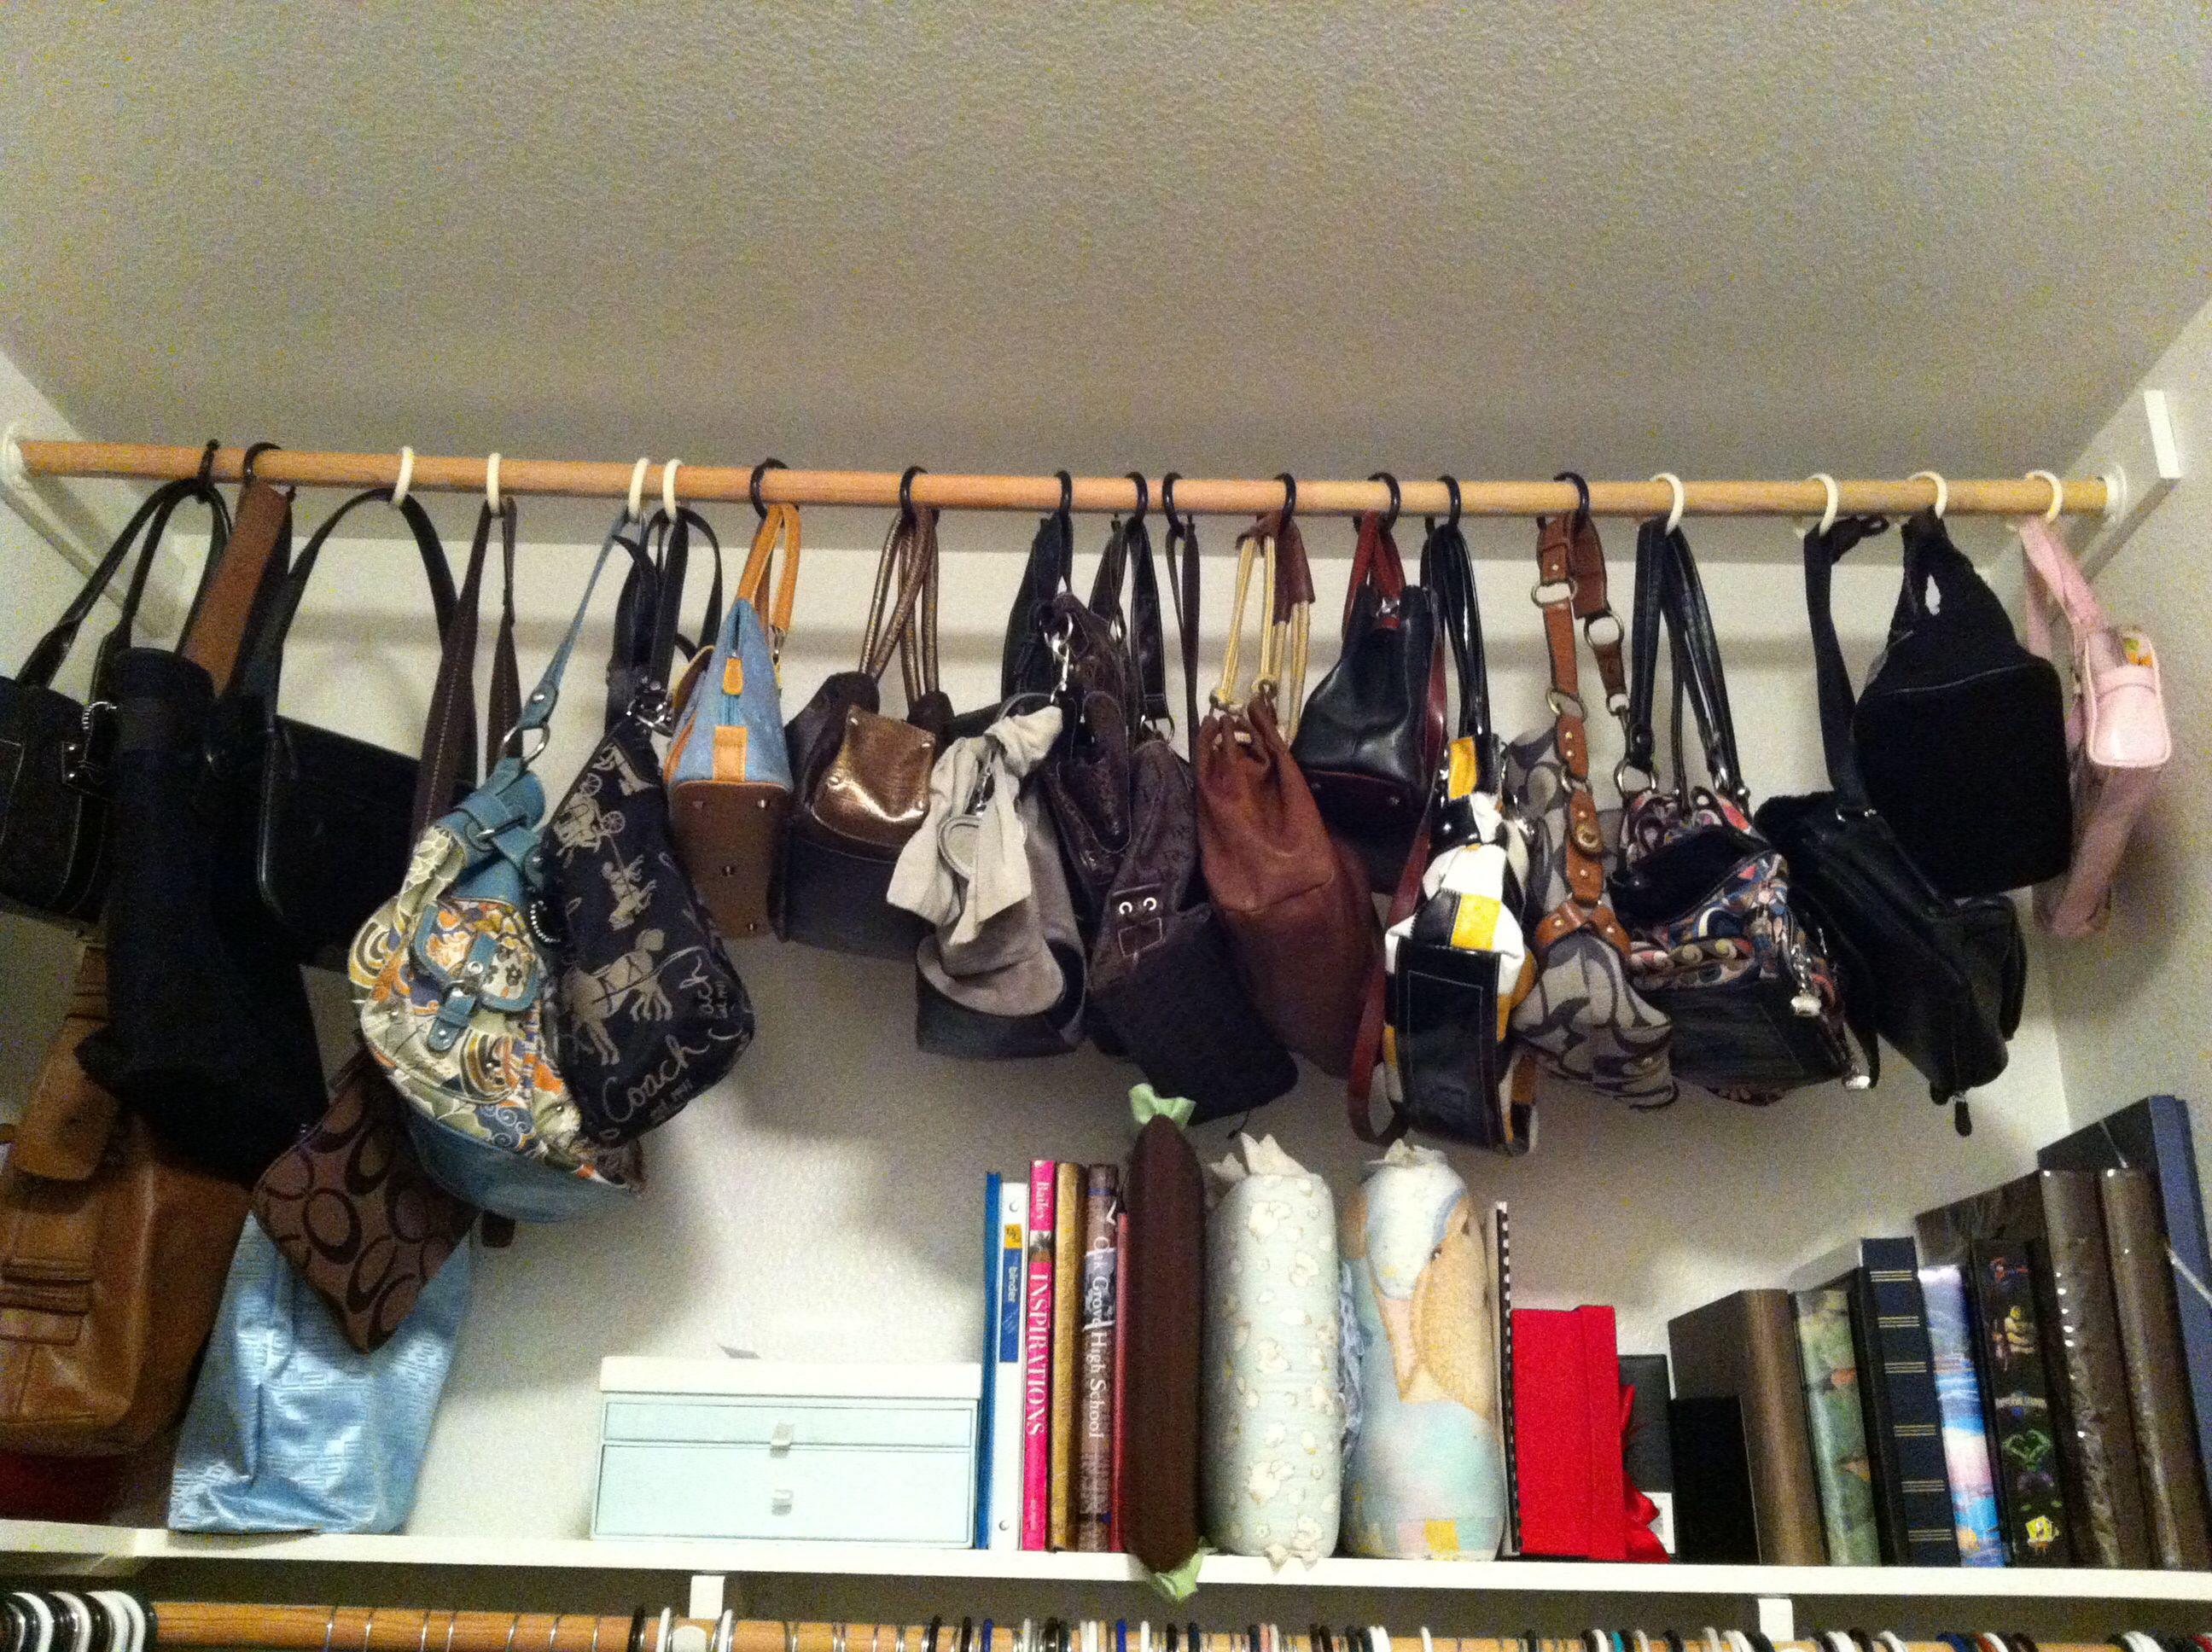 My Pinterest Inspired Purse Hangers Shower Curtain Hooks To Hang Purses On Pole In The Closet Shower Curtain Hooks Purse Hanger Curtain Hooks